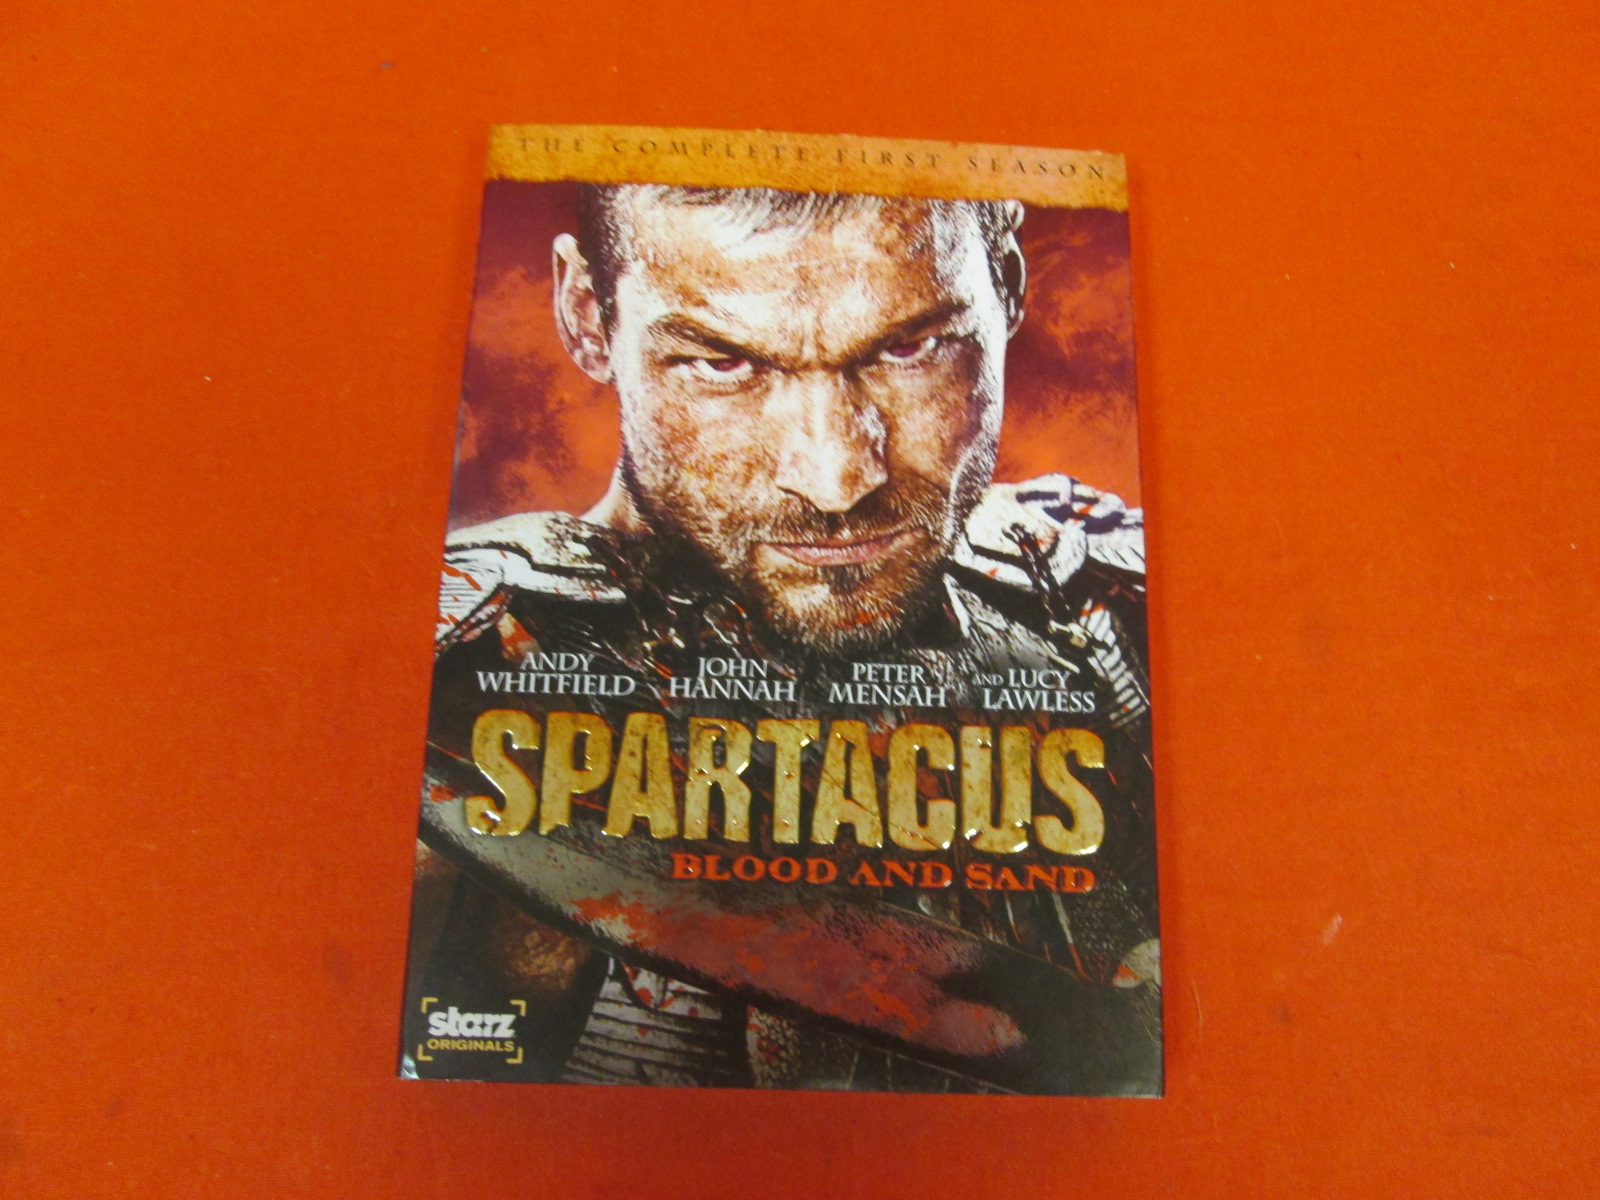 Spartacus: Blood And Sand: Season 1 On DVD Incomplete